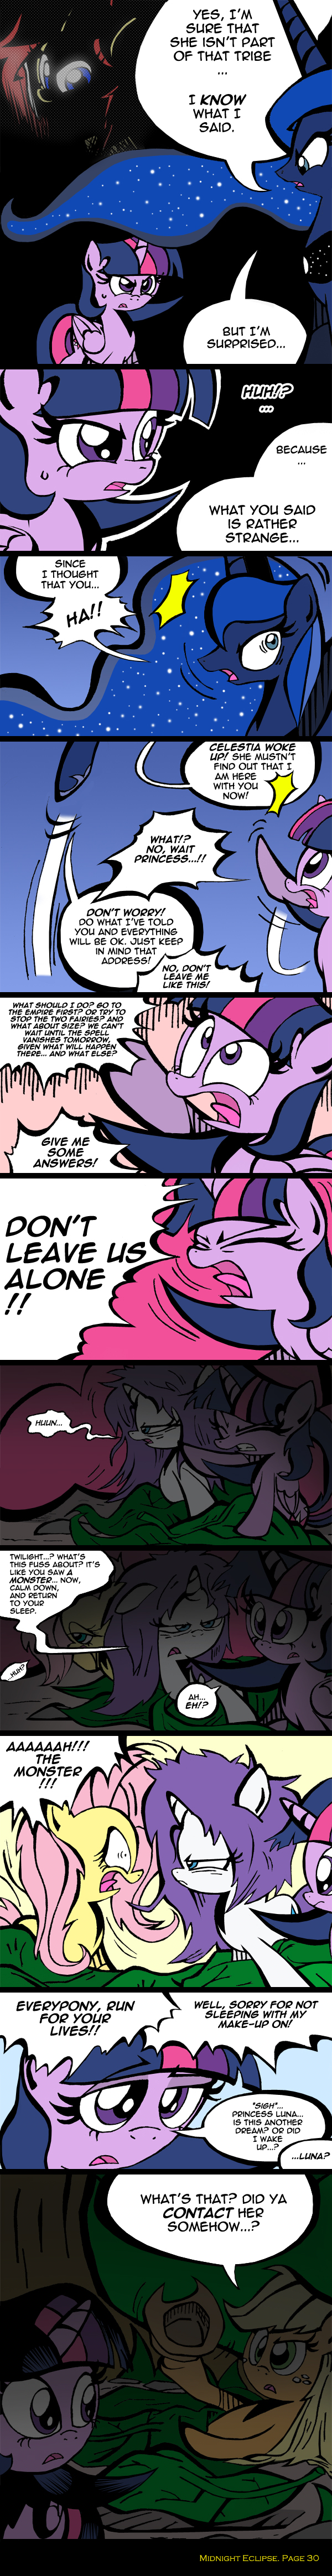 Midnight Eclipse - Page 30 by labba94